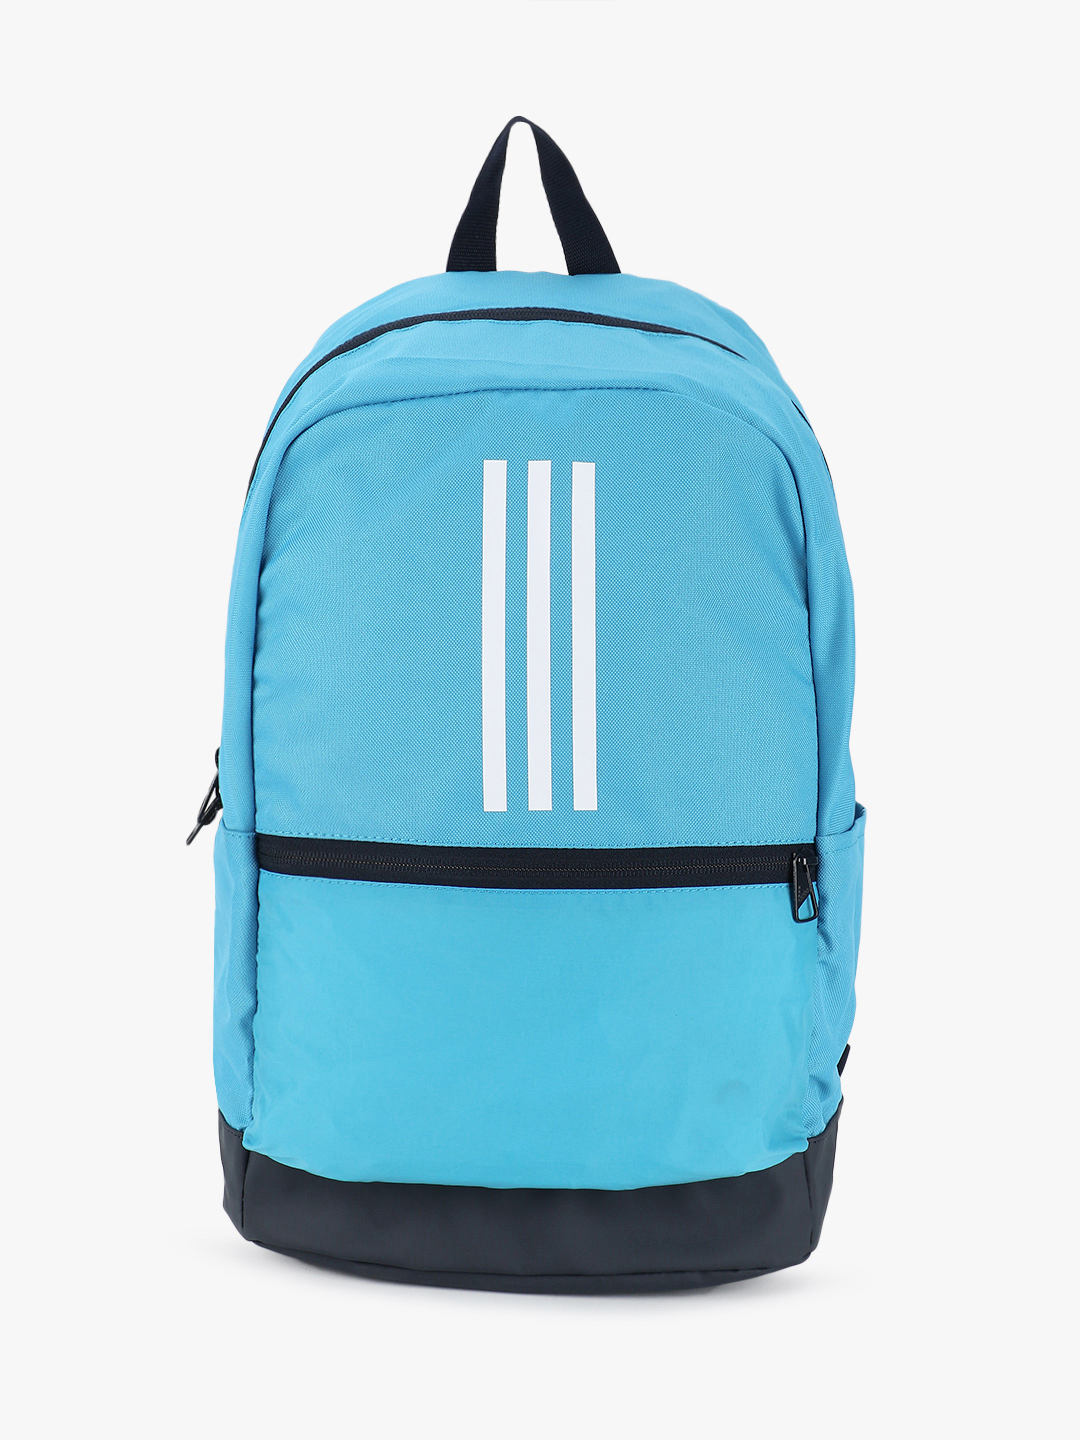 Adidas Multi Classic 3 Stripes Backpack 1